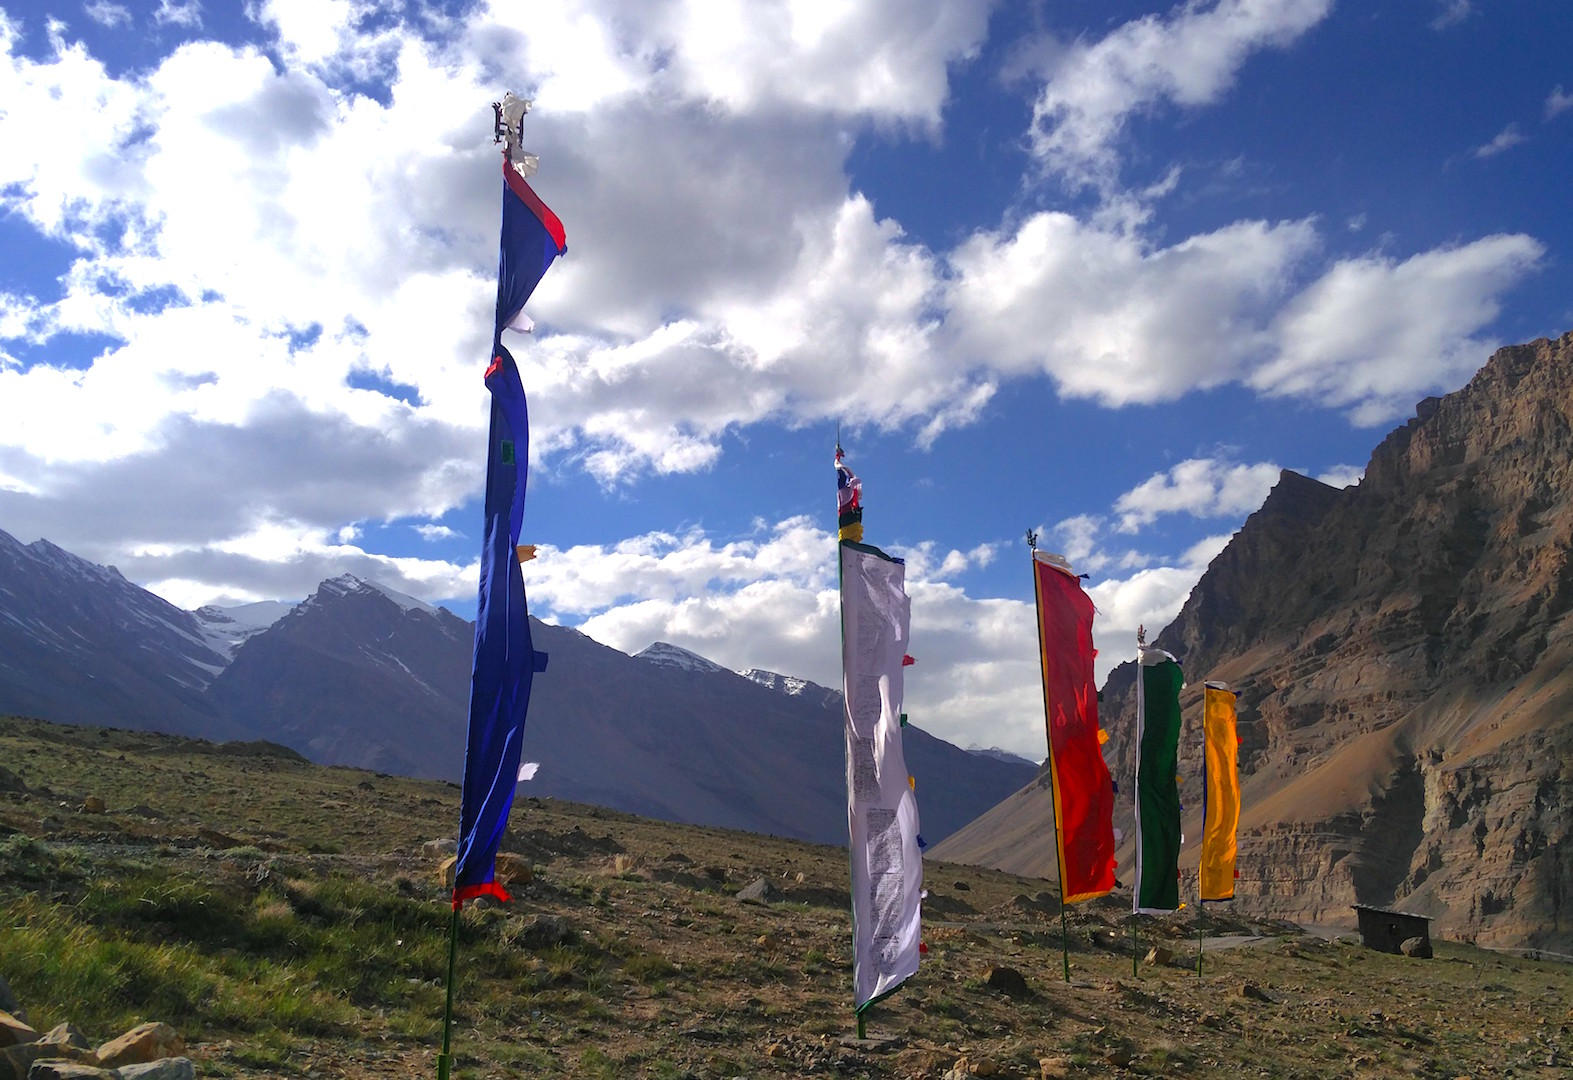 Darchor Flags, Spiti Valley, Himalayas, India